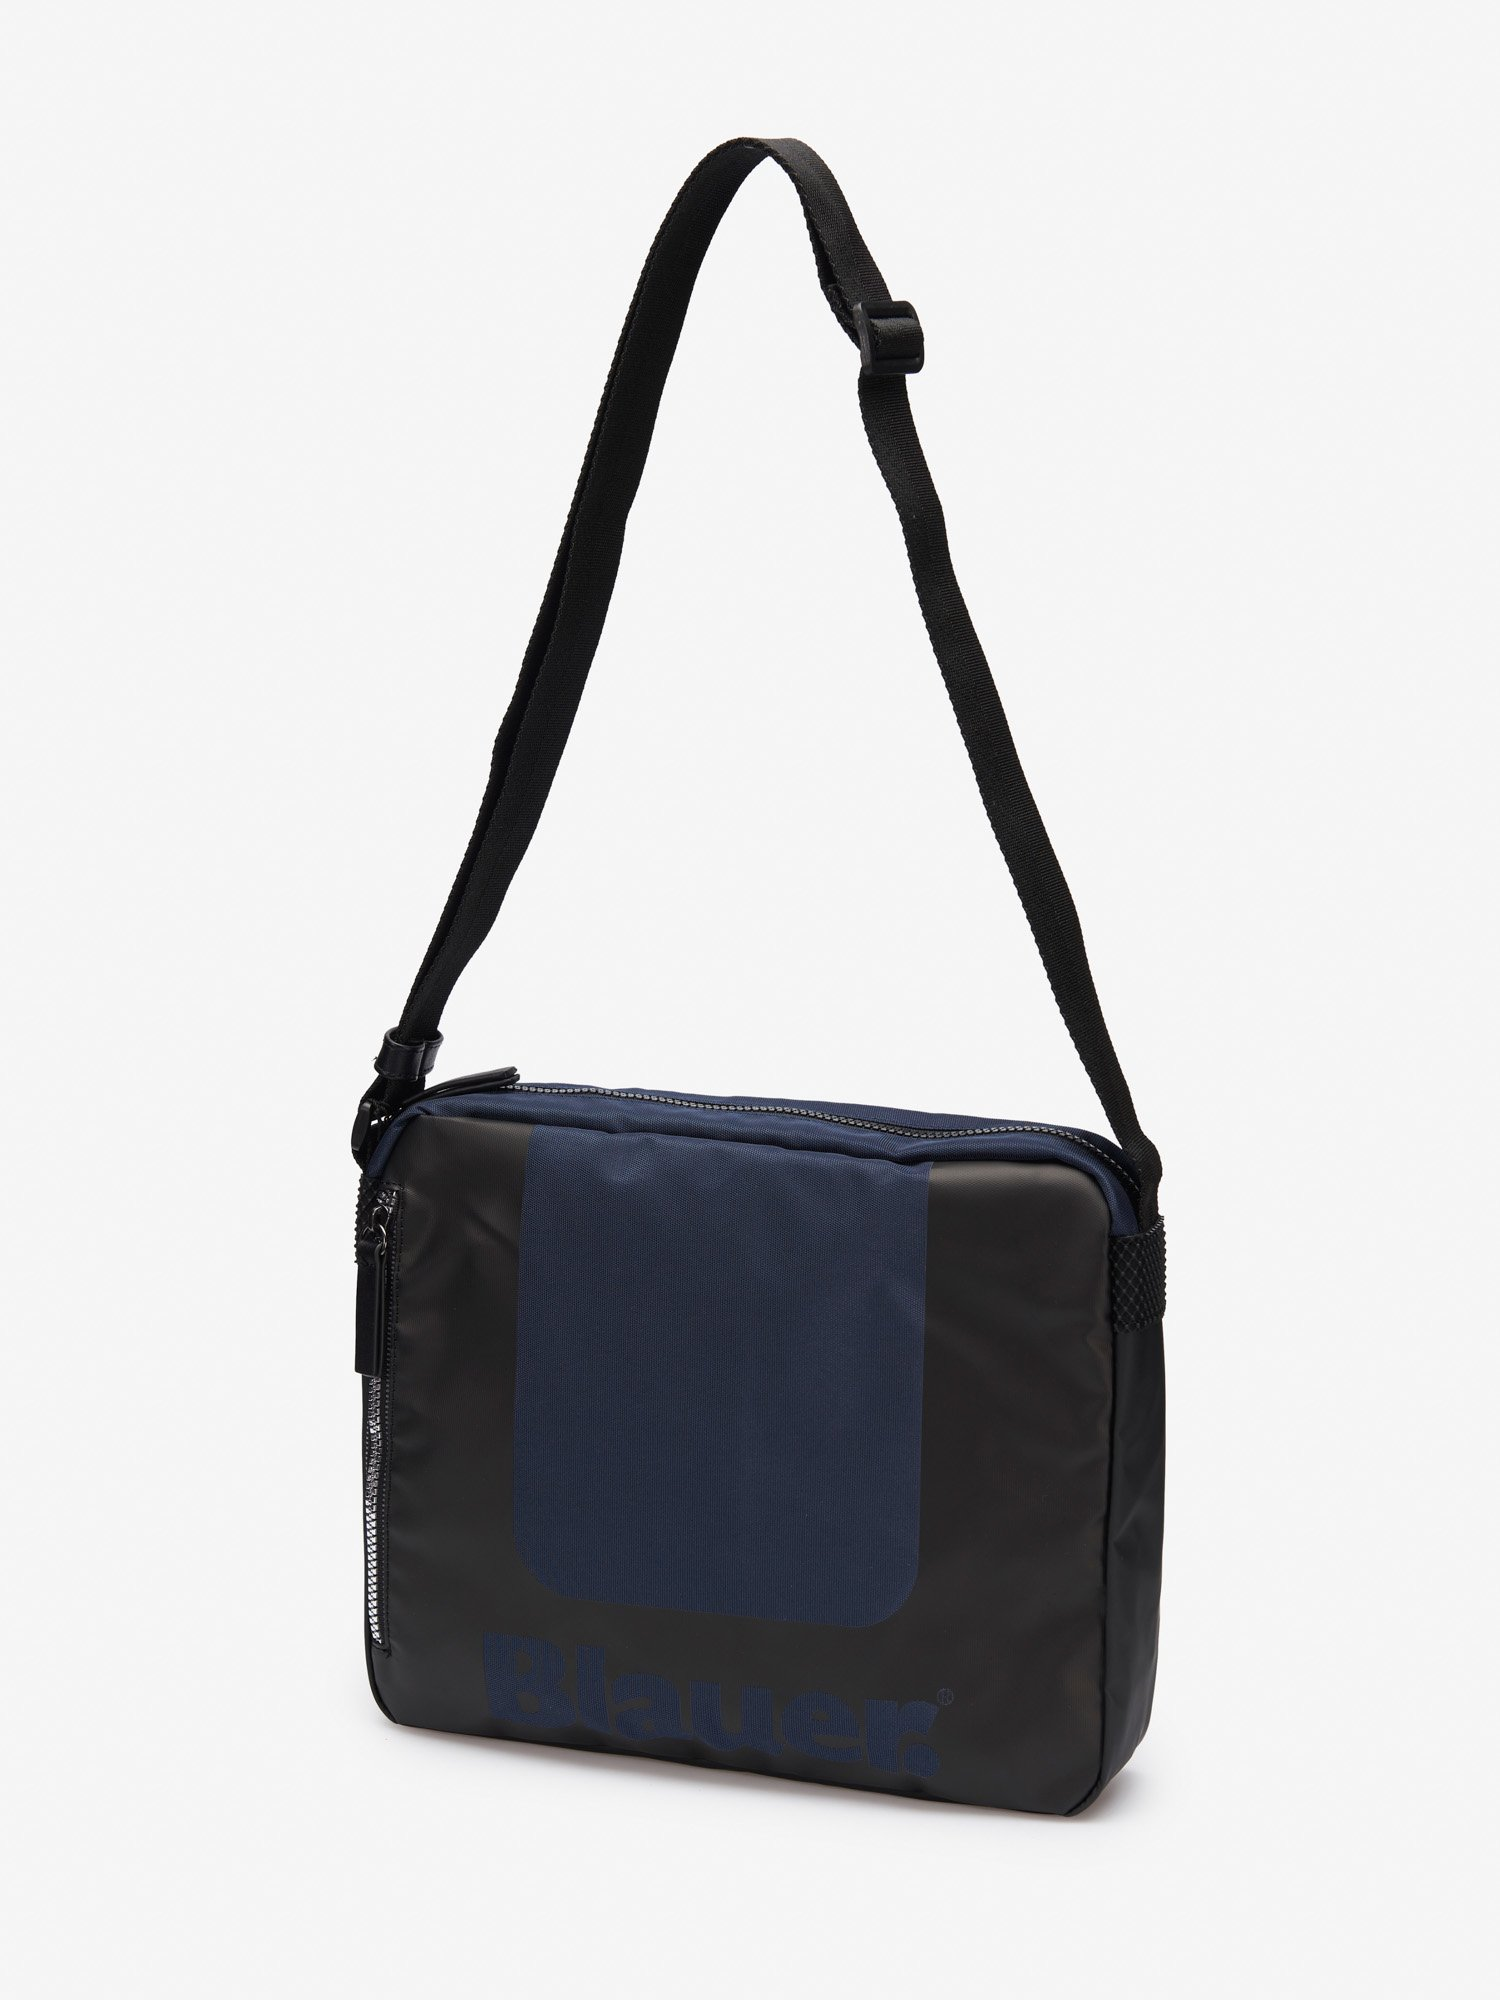 ULTRA-LIGHTWEIGHT CROSS-BODY BAG - Blauer